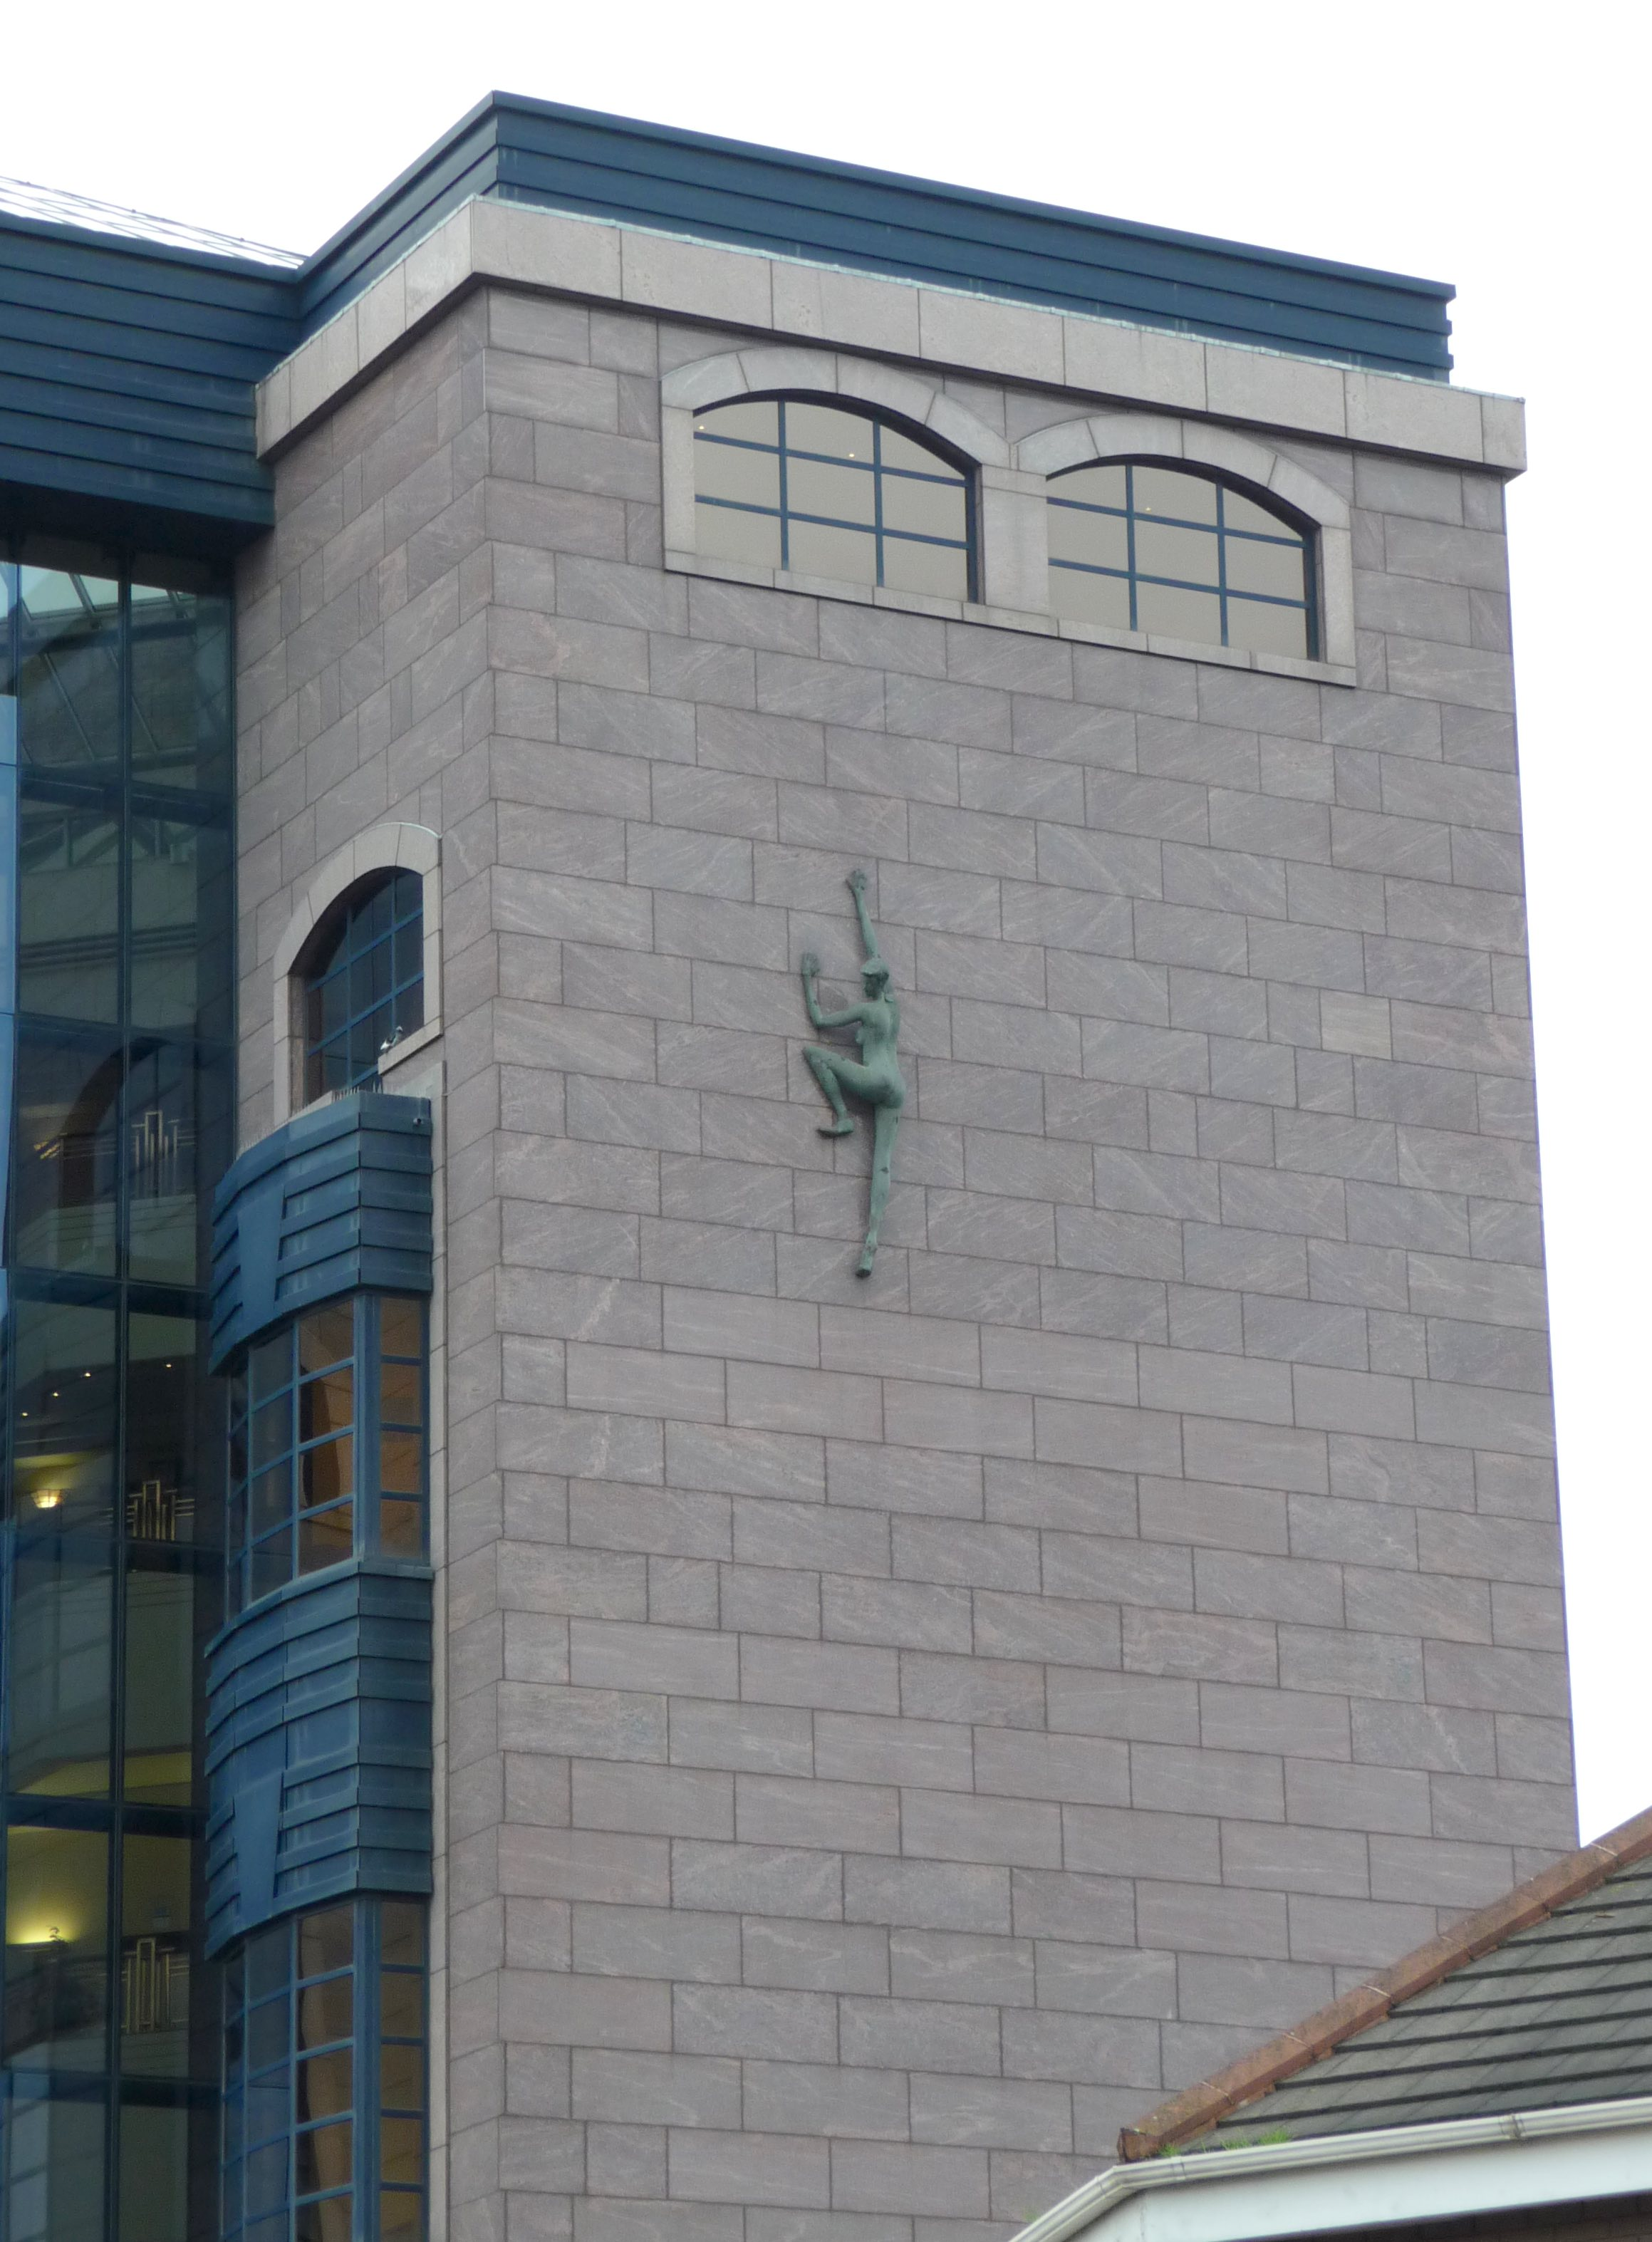 3.Liberty Scaling the Heights